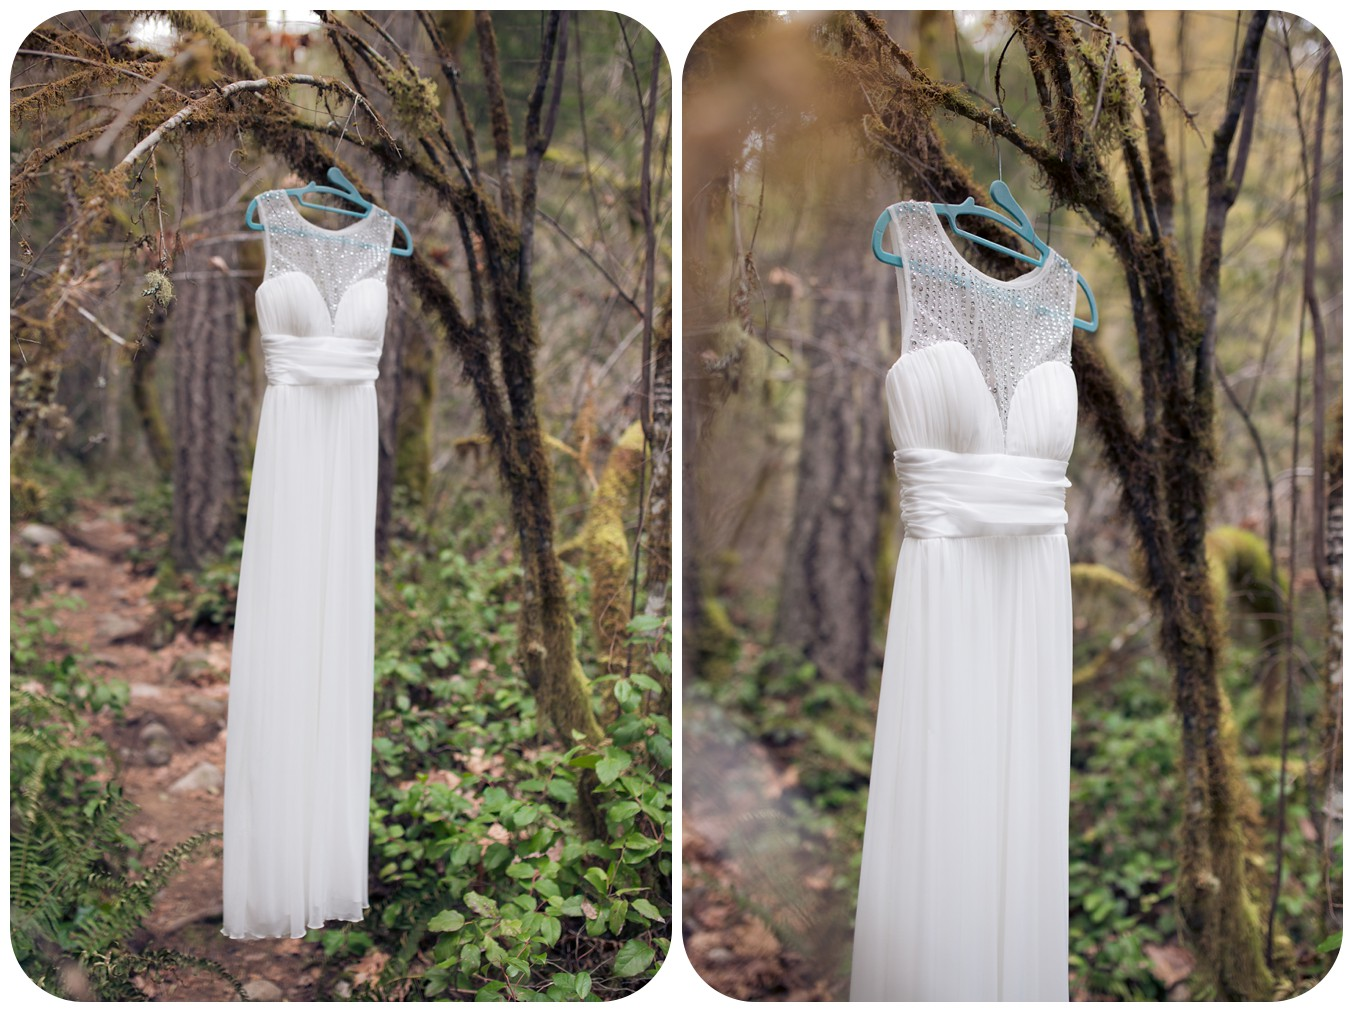 Whimsical wedding dress hanging in forest tree before elopement ceremony at Englishman River Falls in Parksville BC